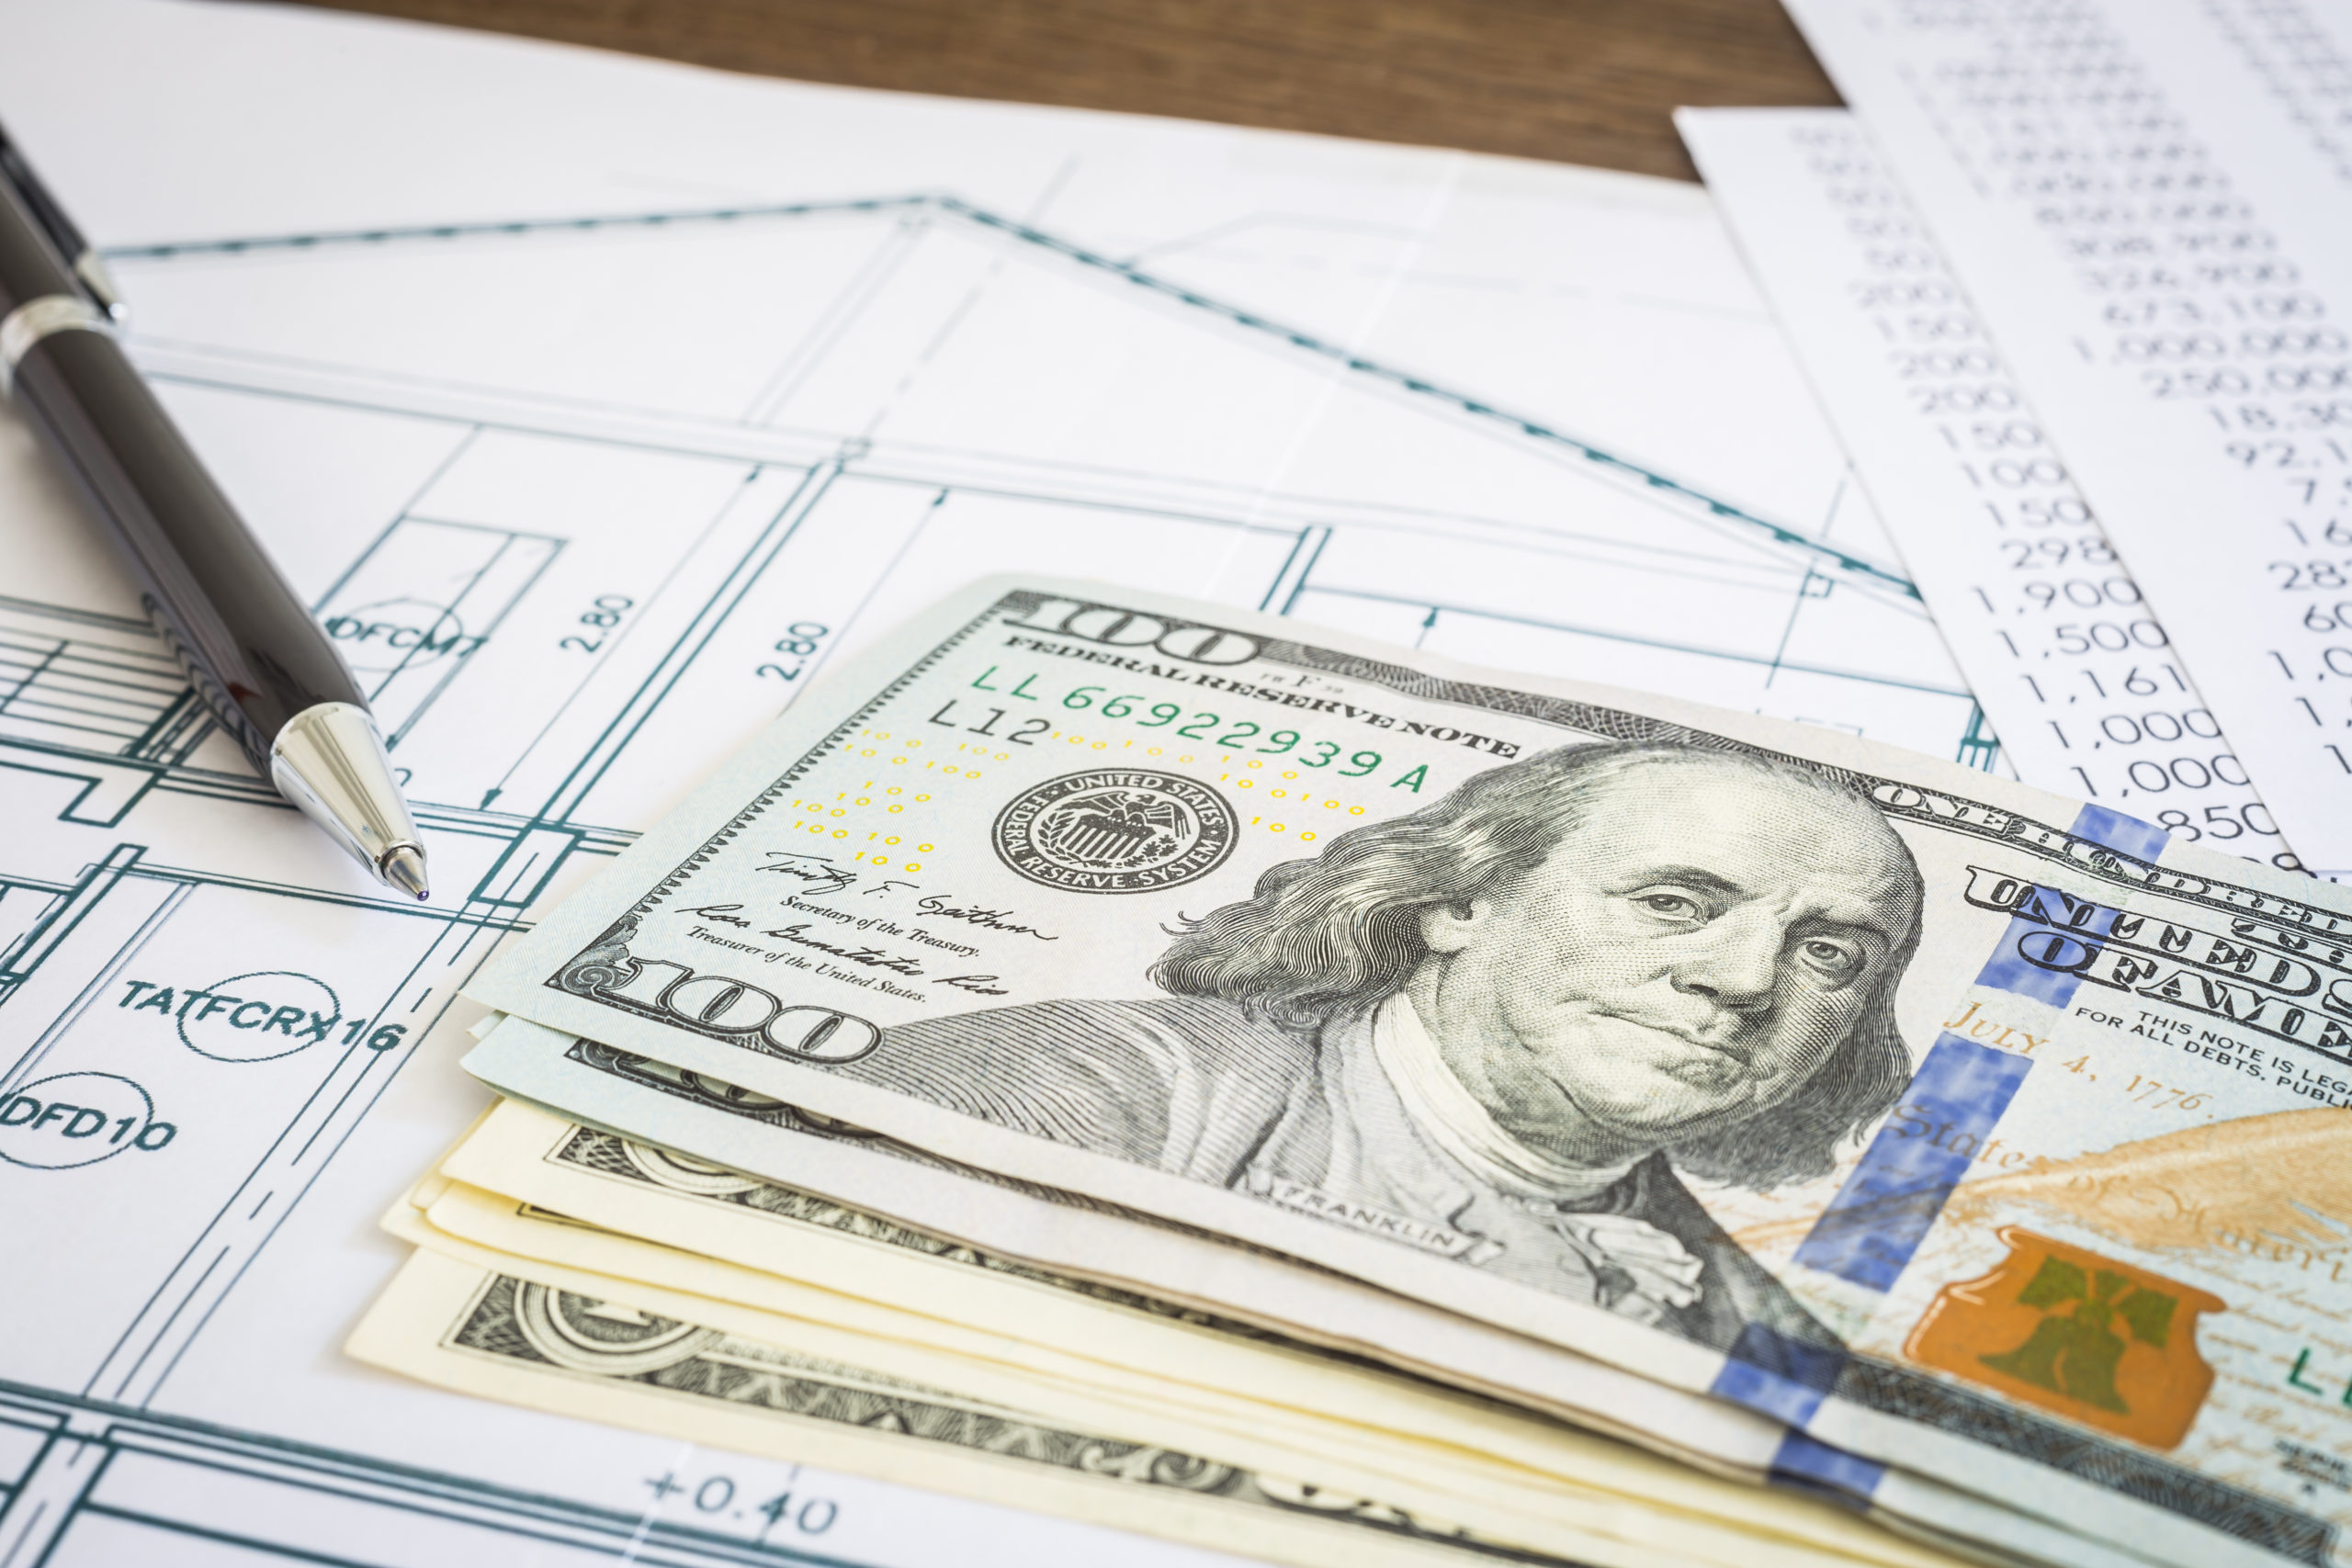 New dollar banknotes or money, house blueprint floor plan, paperwork and black pen put on wooden table. Concepts of construction budget, mortgage, home loan and refinance.